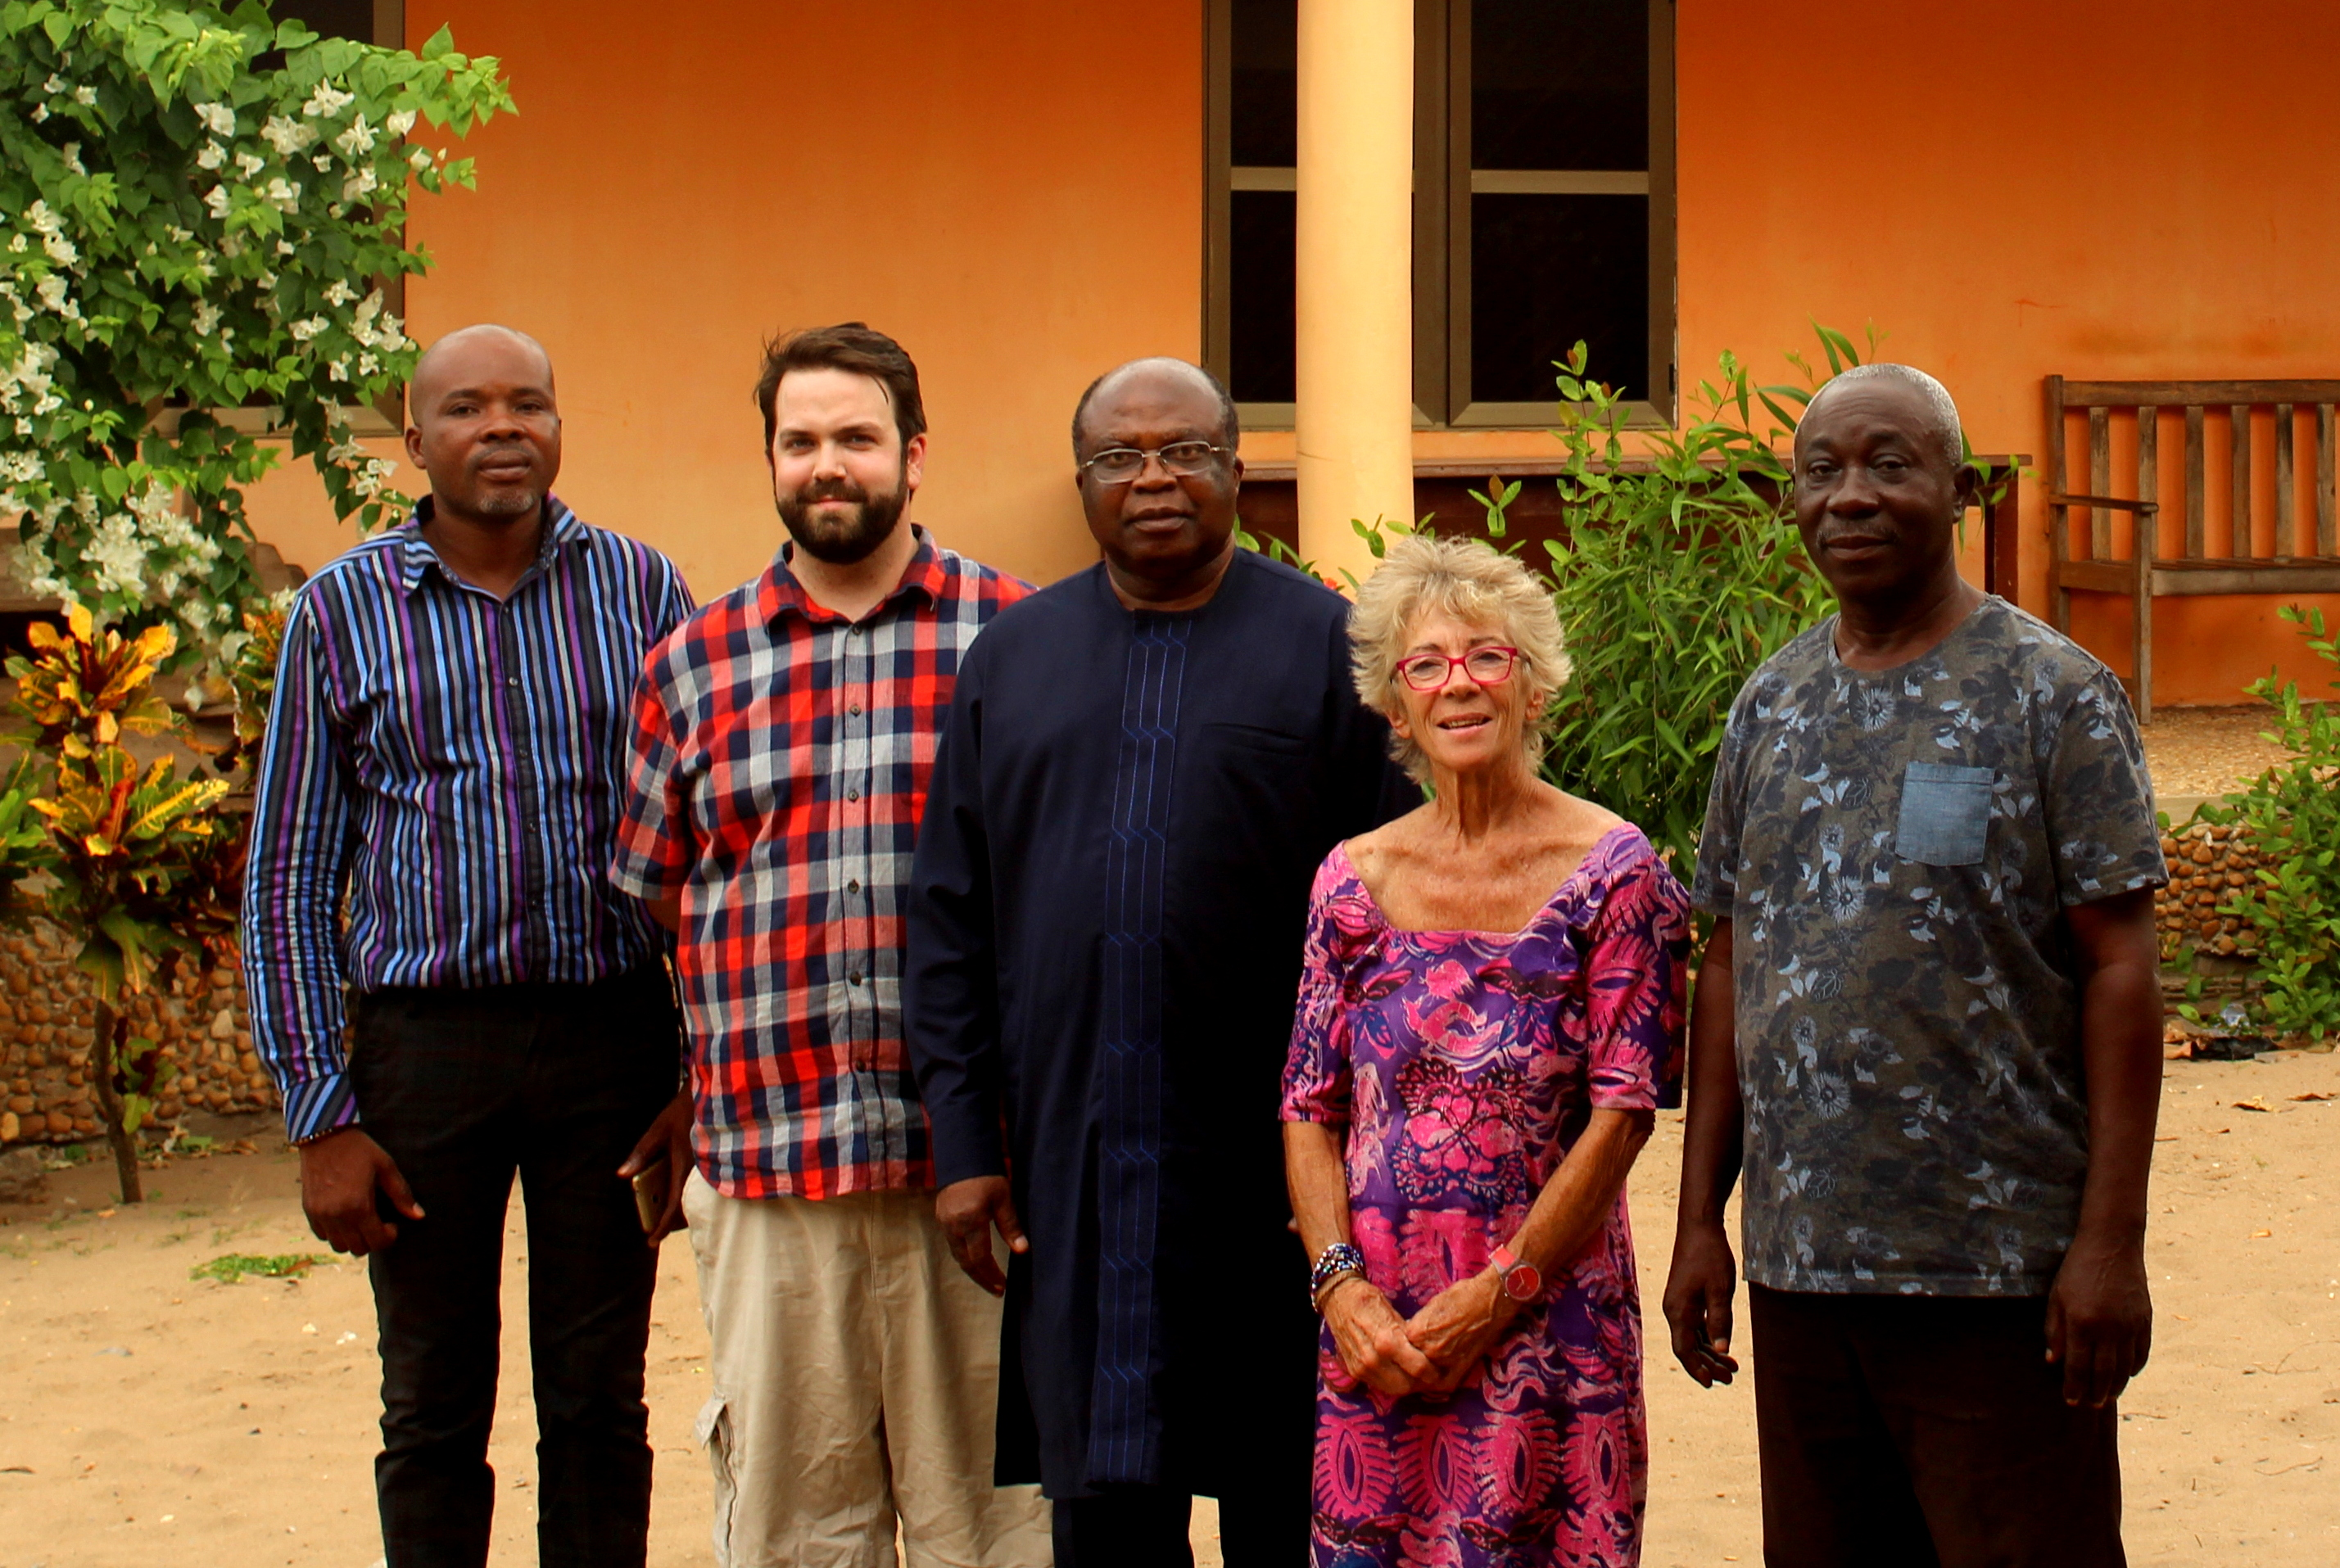 Parliamentary Assistant to local MP Kofi Humado; David Carter of RESCo Solar; local MP Kofi Humado; Peta Hall; Stanley Yeboah, AVTI Manager